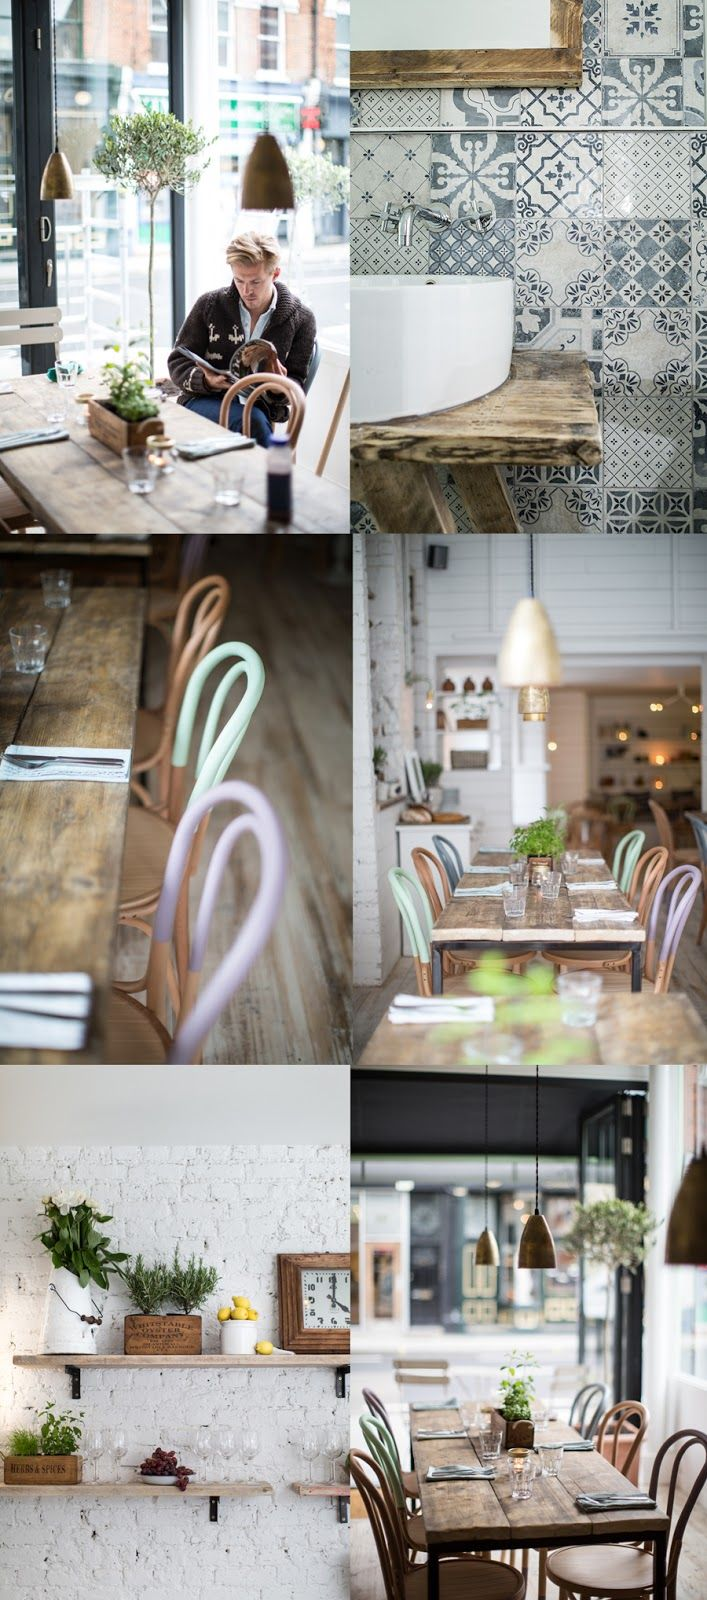 Hally's Cafe, Photography Helen Cathcart, Interior design Alexander Waterworth Interiors